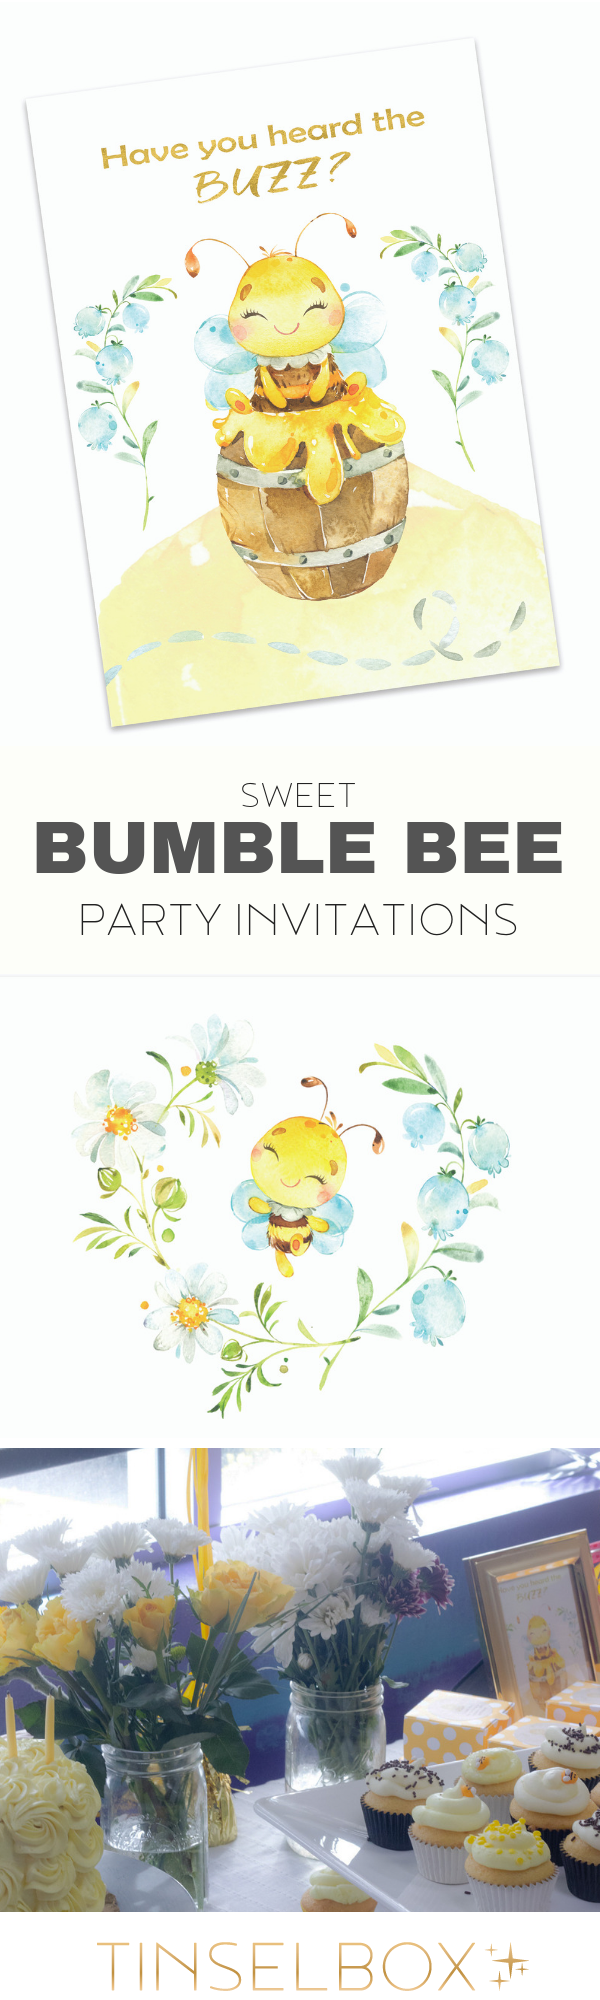 Sweet Bumble Bee Invitations